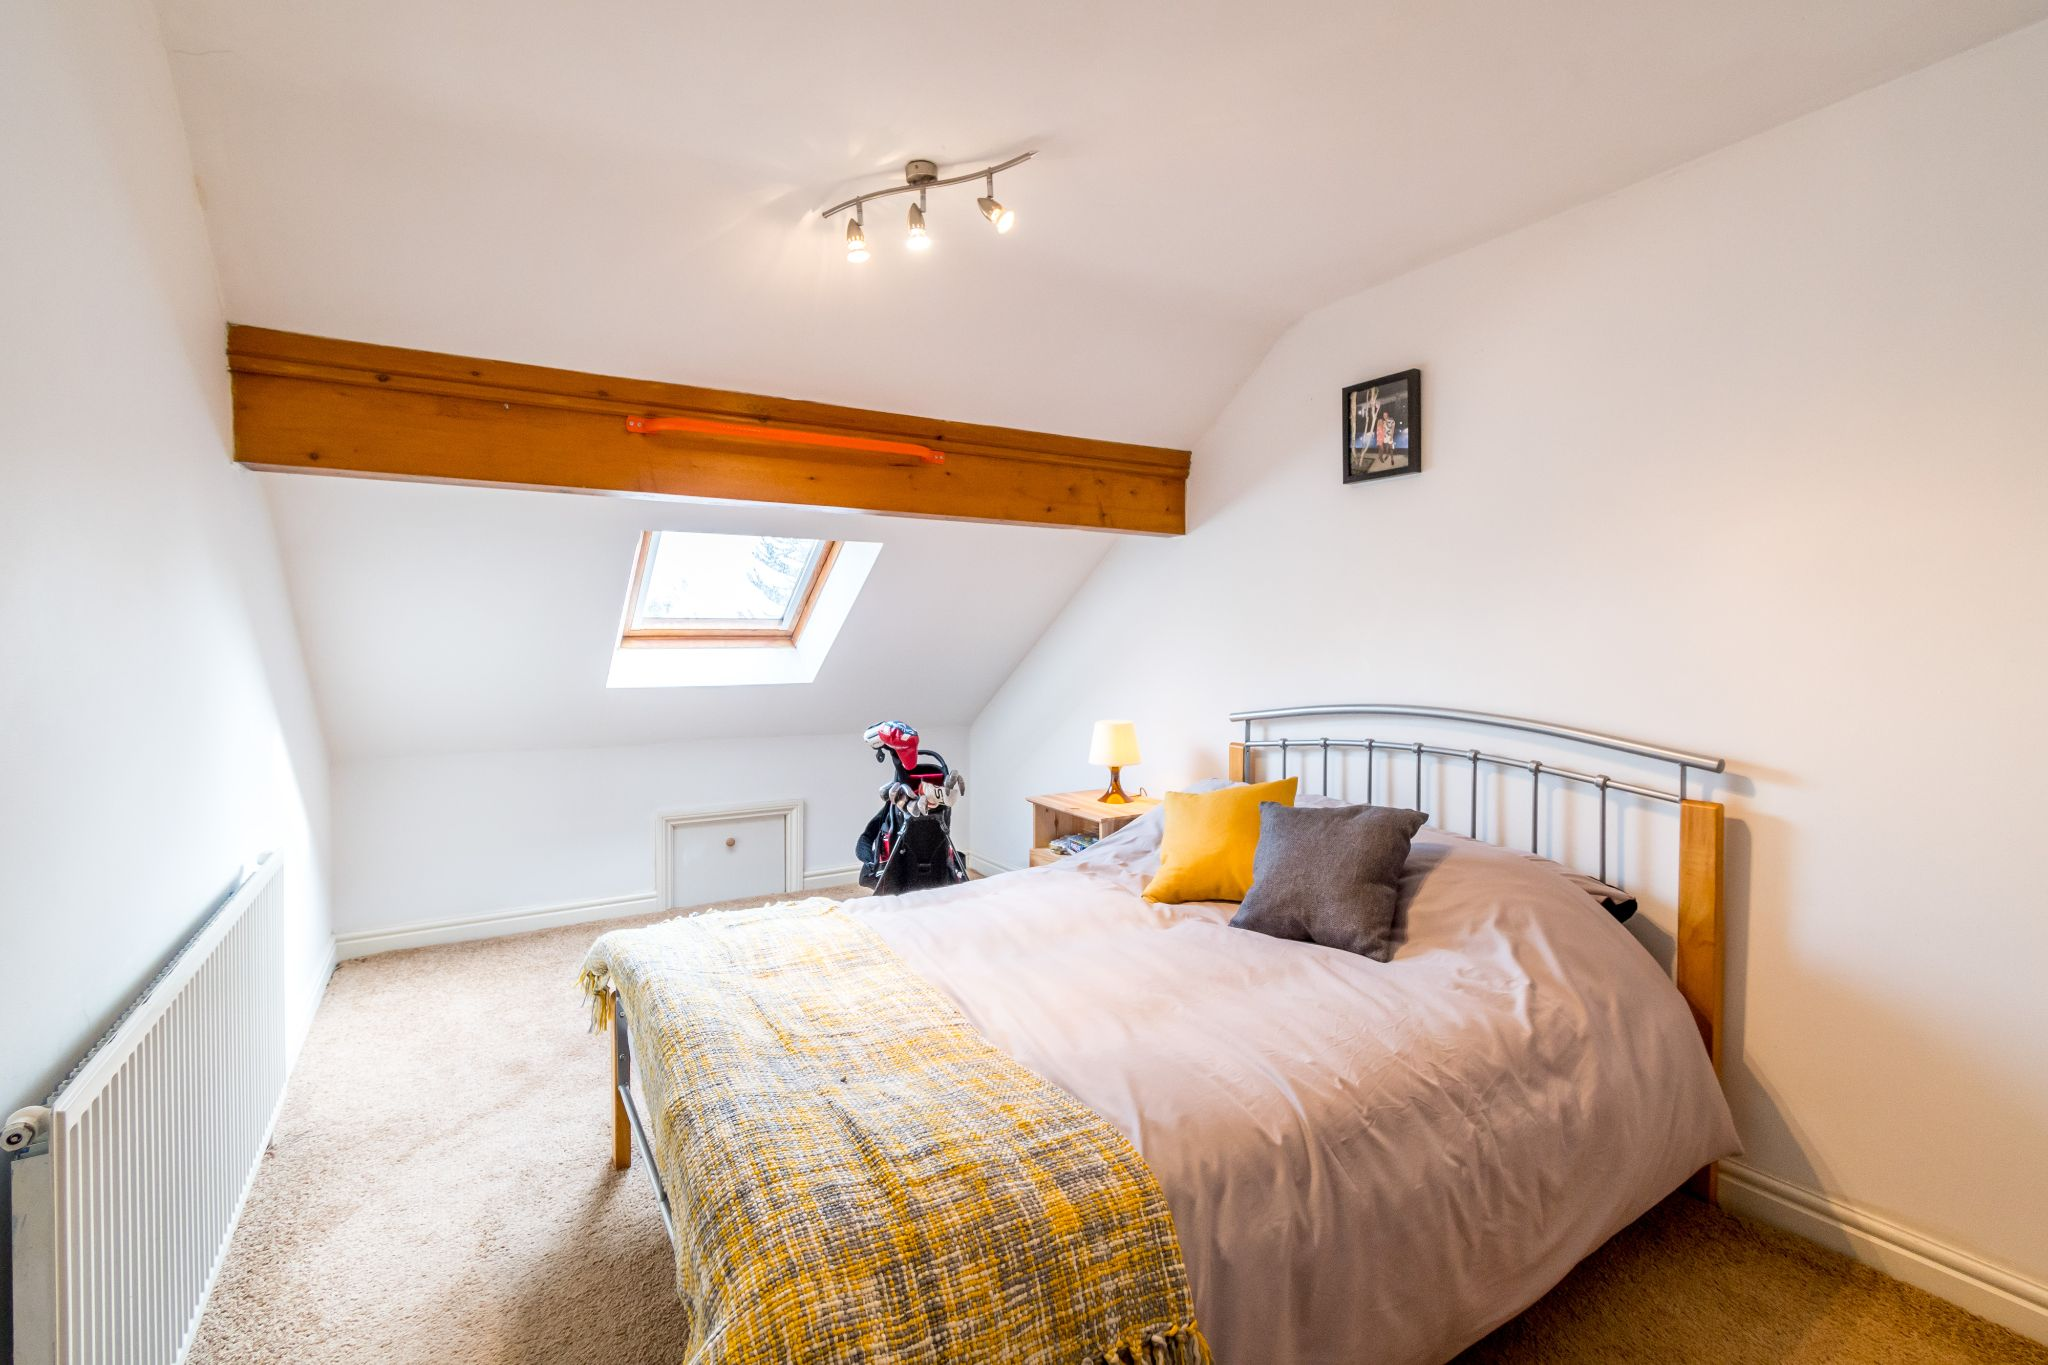 5 bedroom detached house SSTC in Brighouse - Bedroom 3